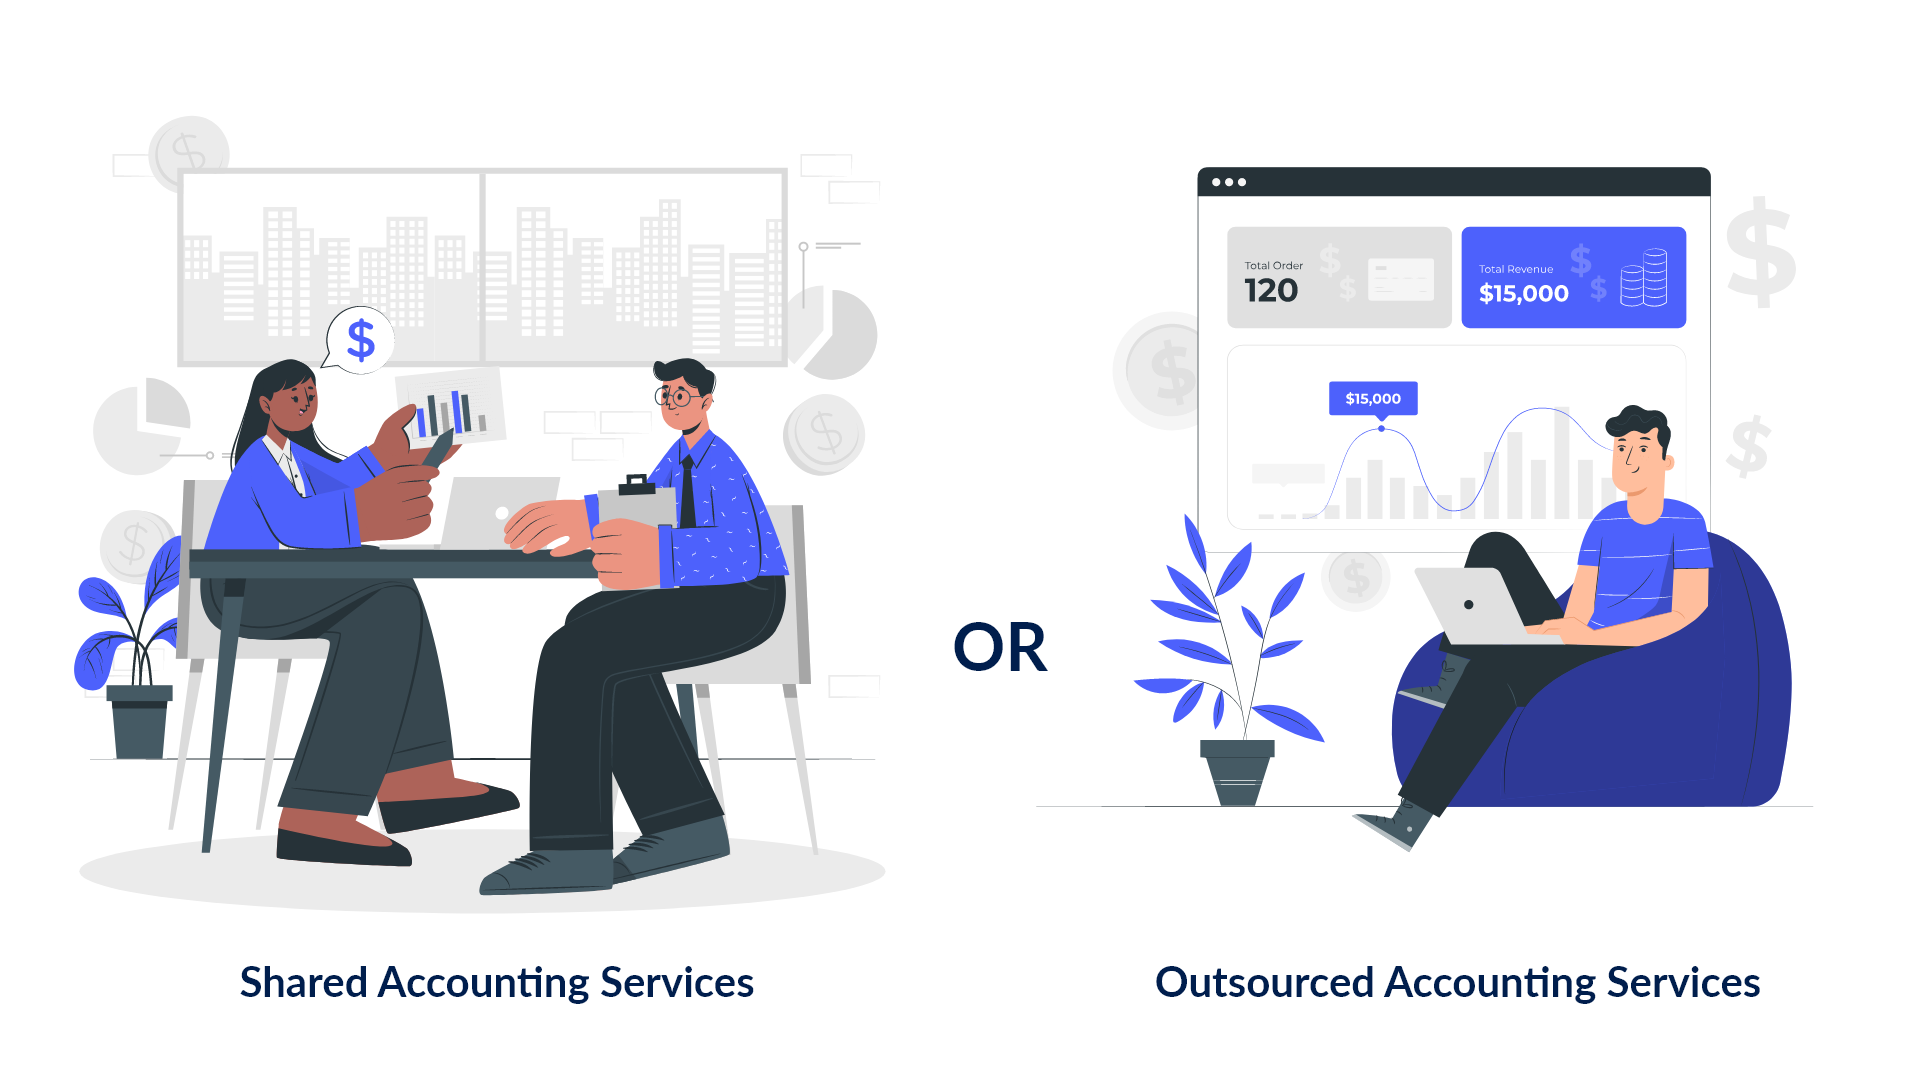 Which is better for your business - shared accounting services or outsourcing?